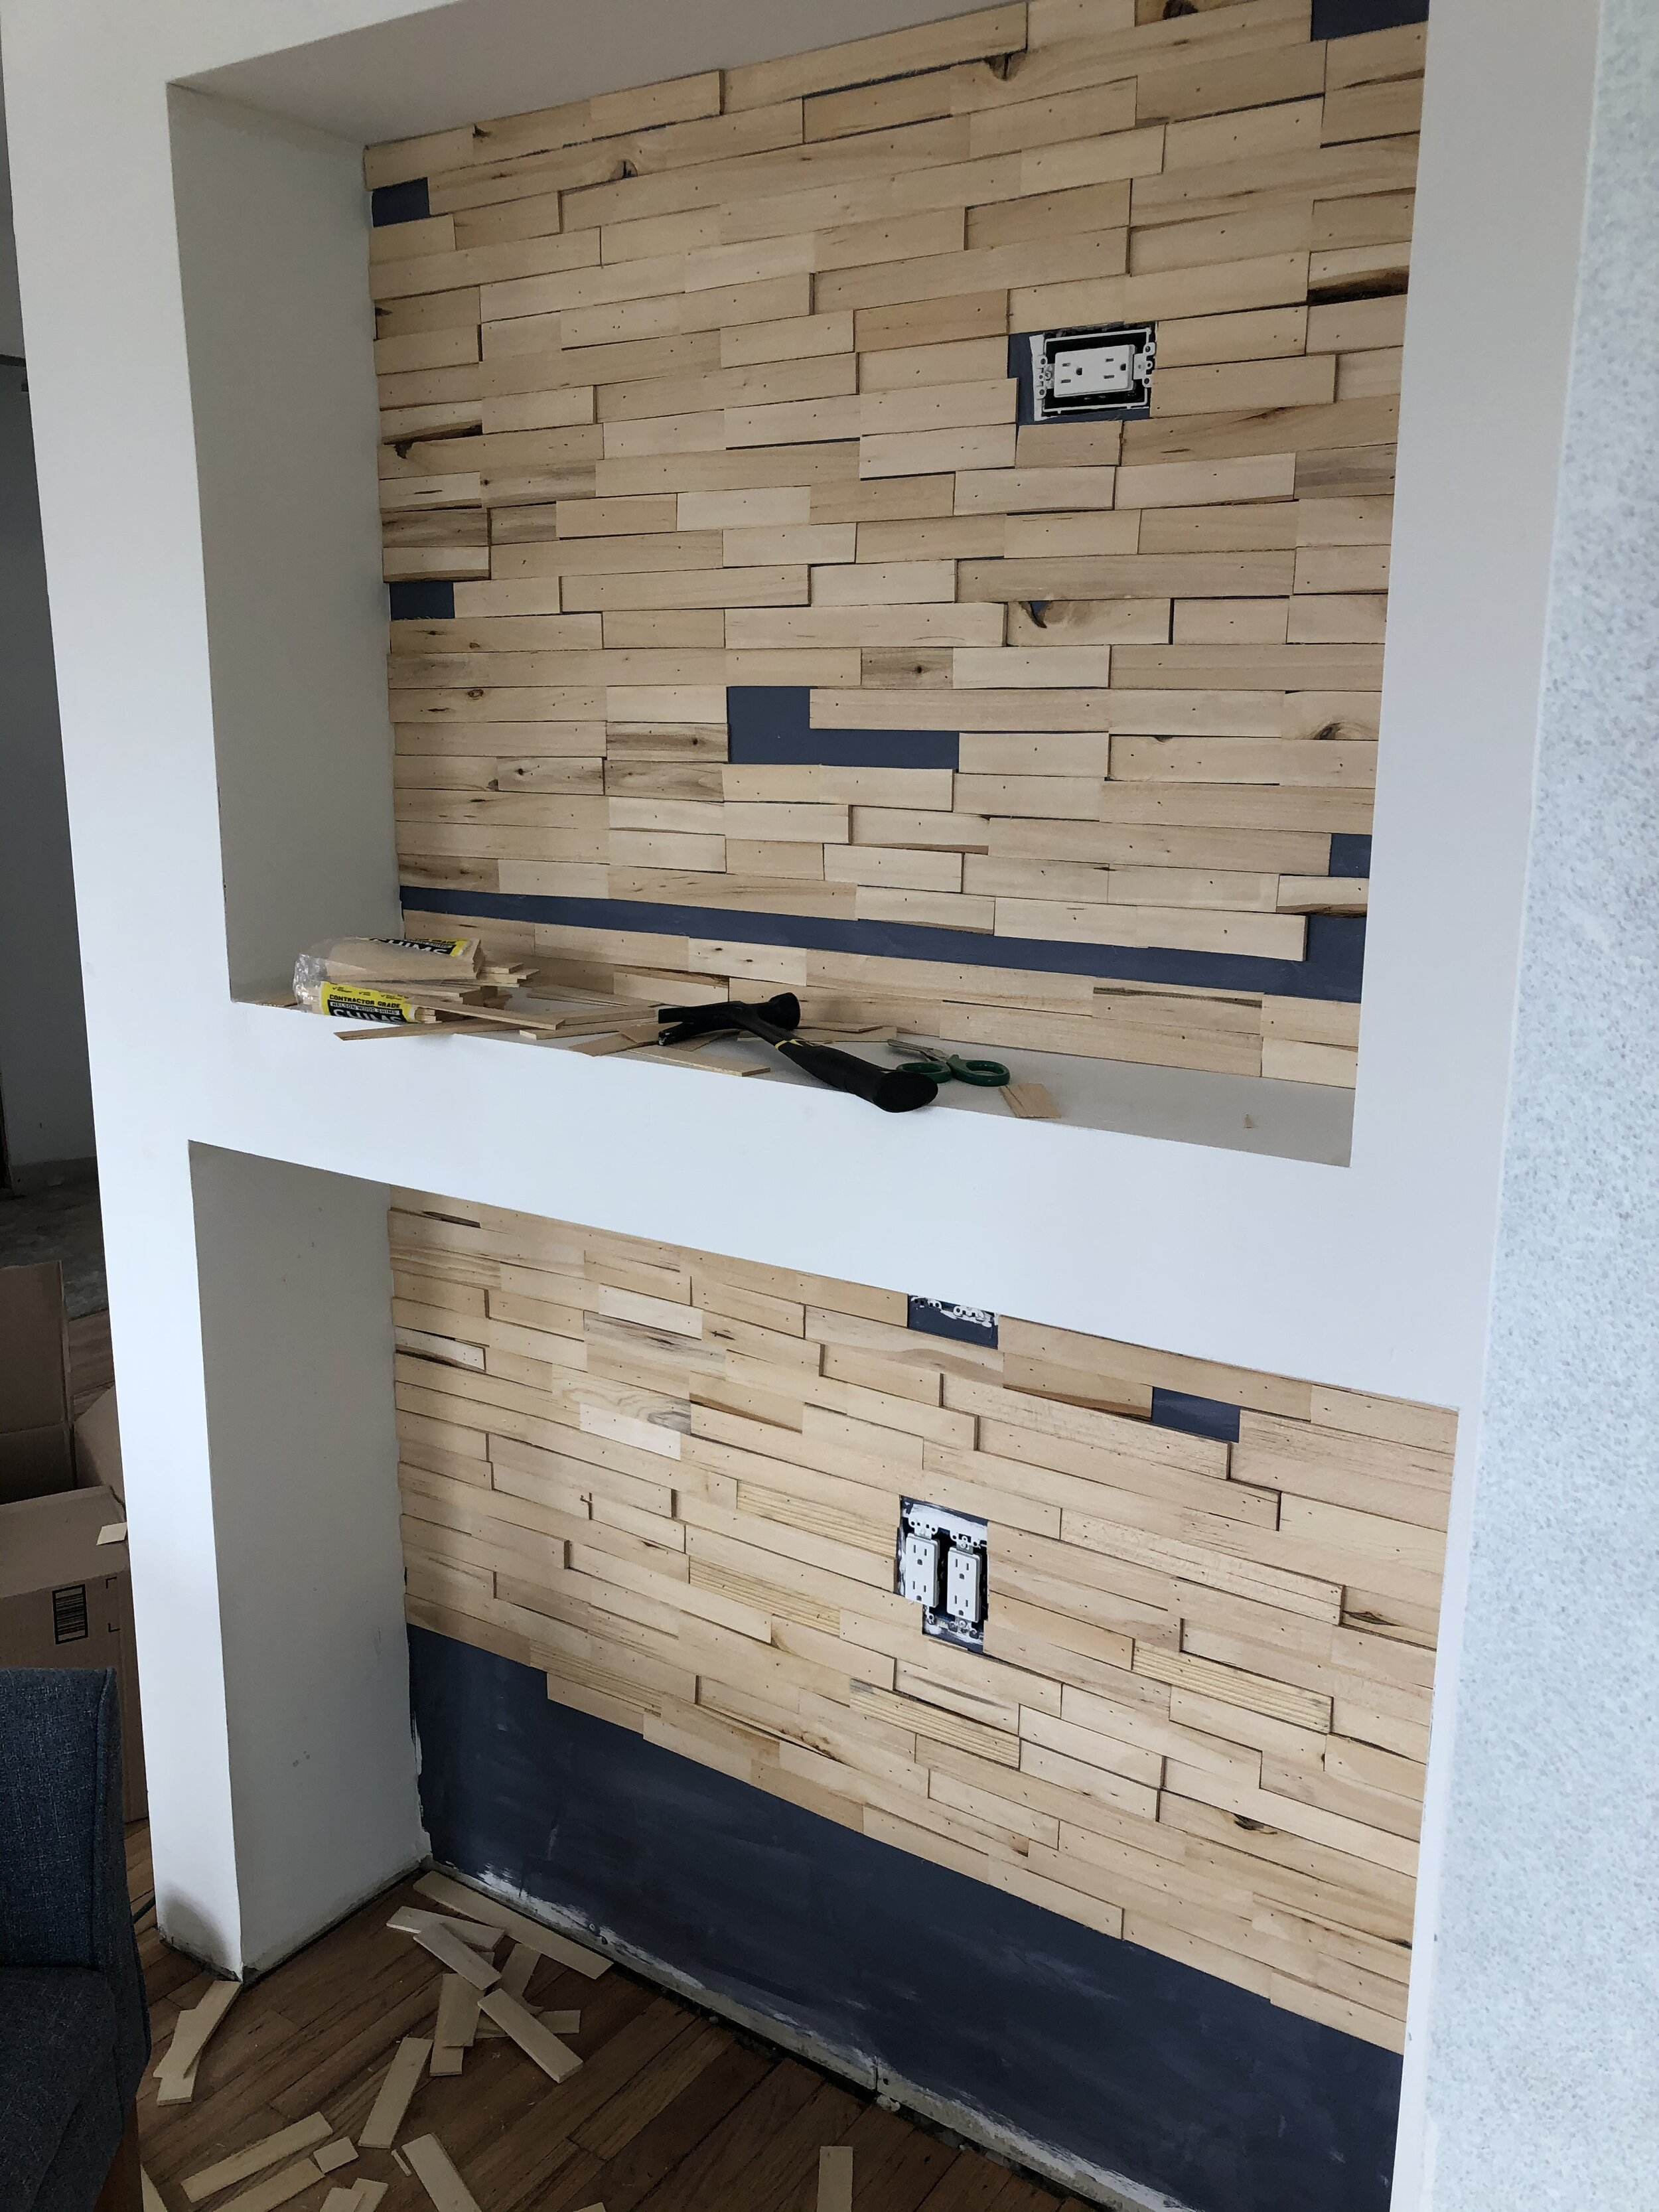 Installing wood shims on wall